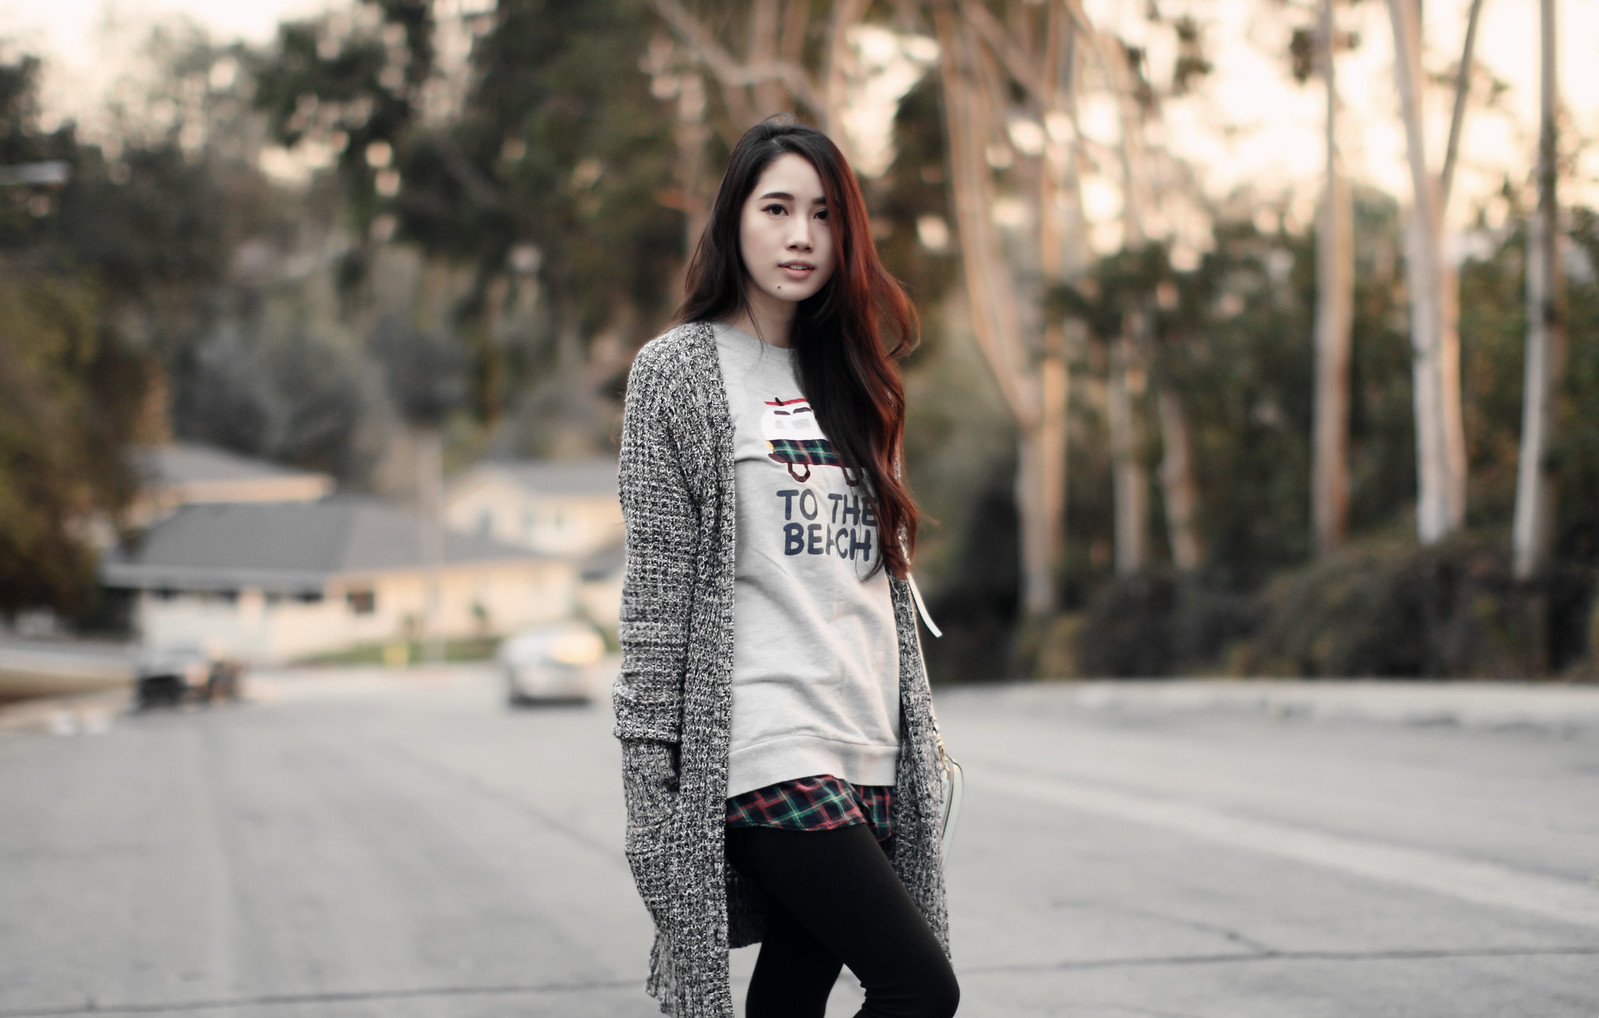 1287-ootd-sweaterdress-koreanfashion-asianfashion-korean-fall-yesstyle-sweaterweather-clothestoyouuu-blogger-elizabeeetht